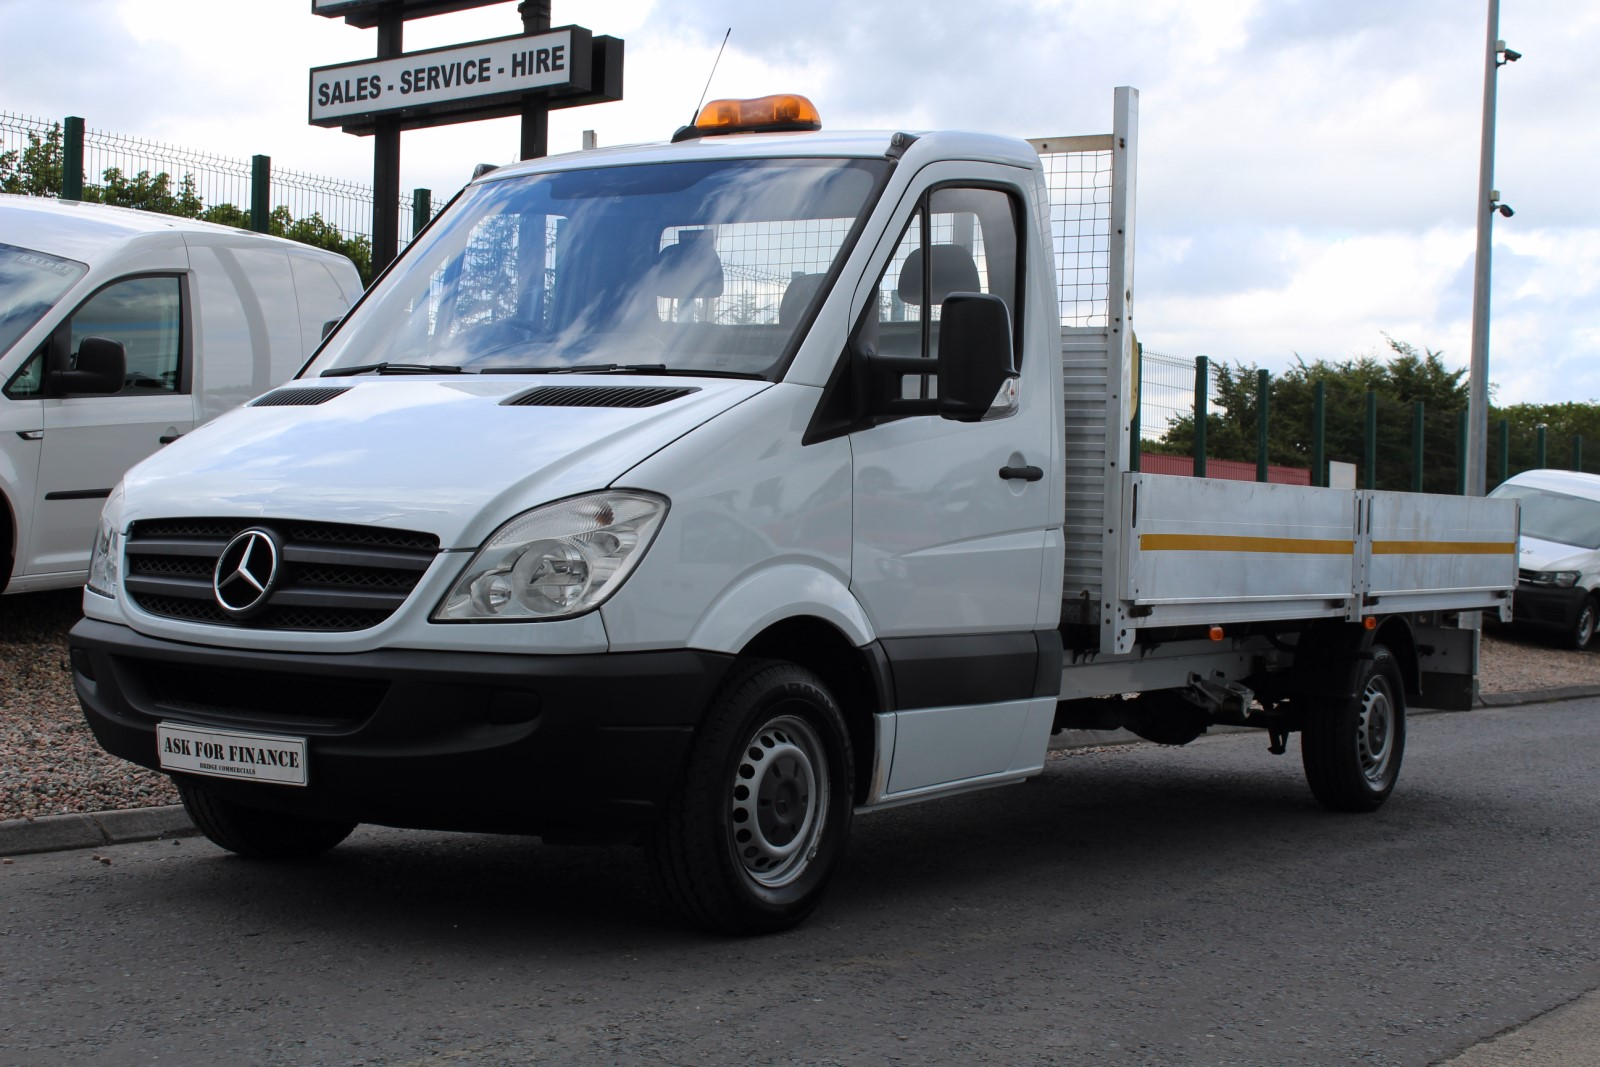 Mercedes Benz Sprinter 313 S/C Dropside